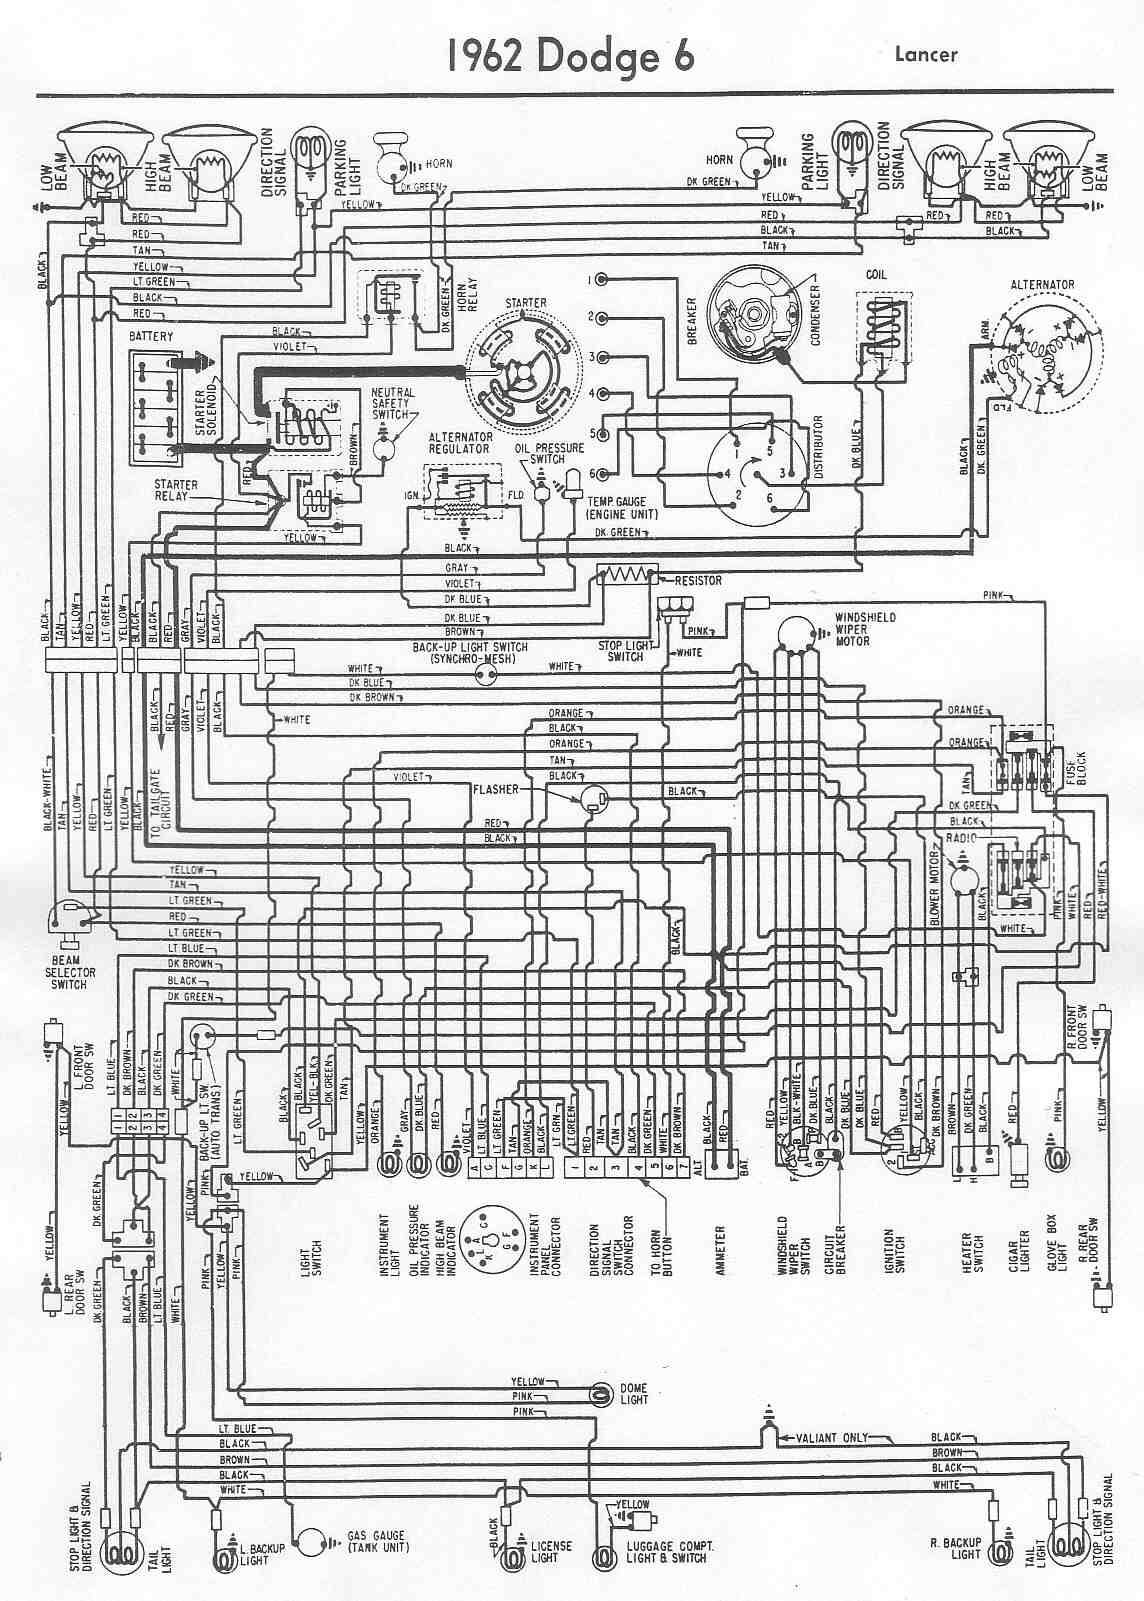 Wiring diagram mitsubishi lancer 1997 somurich wiring diagram mitsubishi lancer 1997 dodge car manuals wiring diagrams pdf 6 fault codes asfbconference2016 Gallery